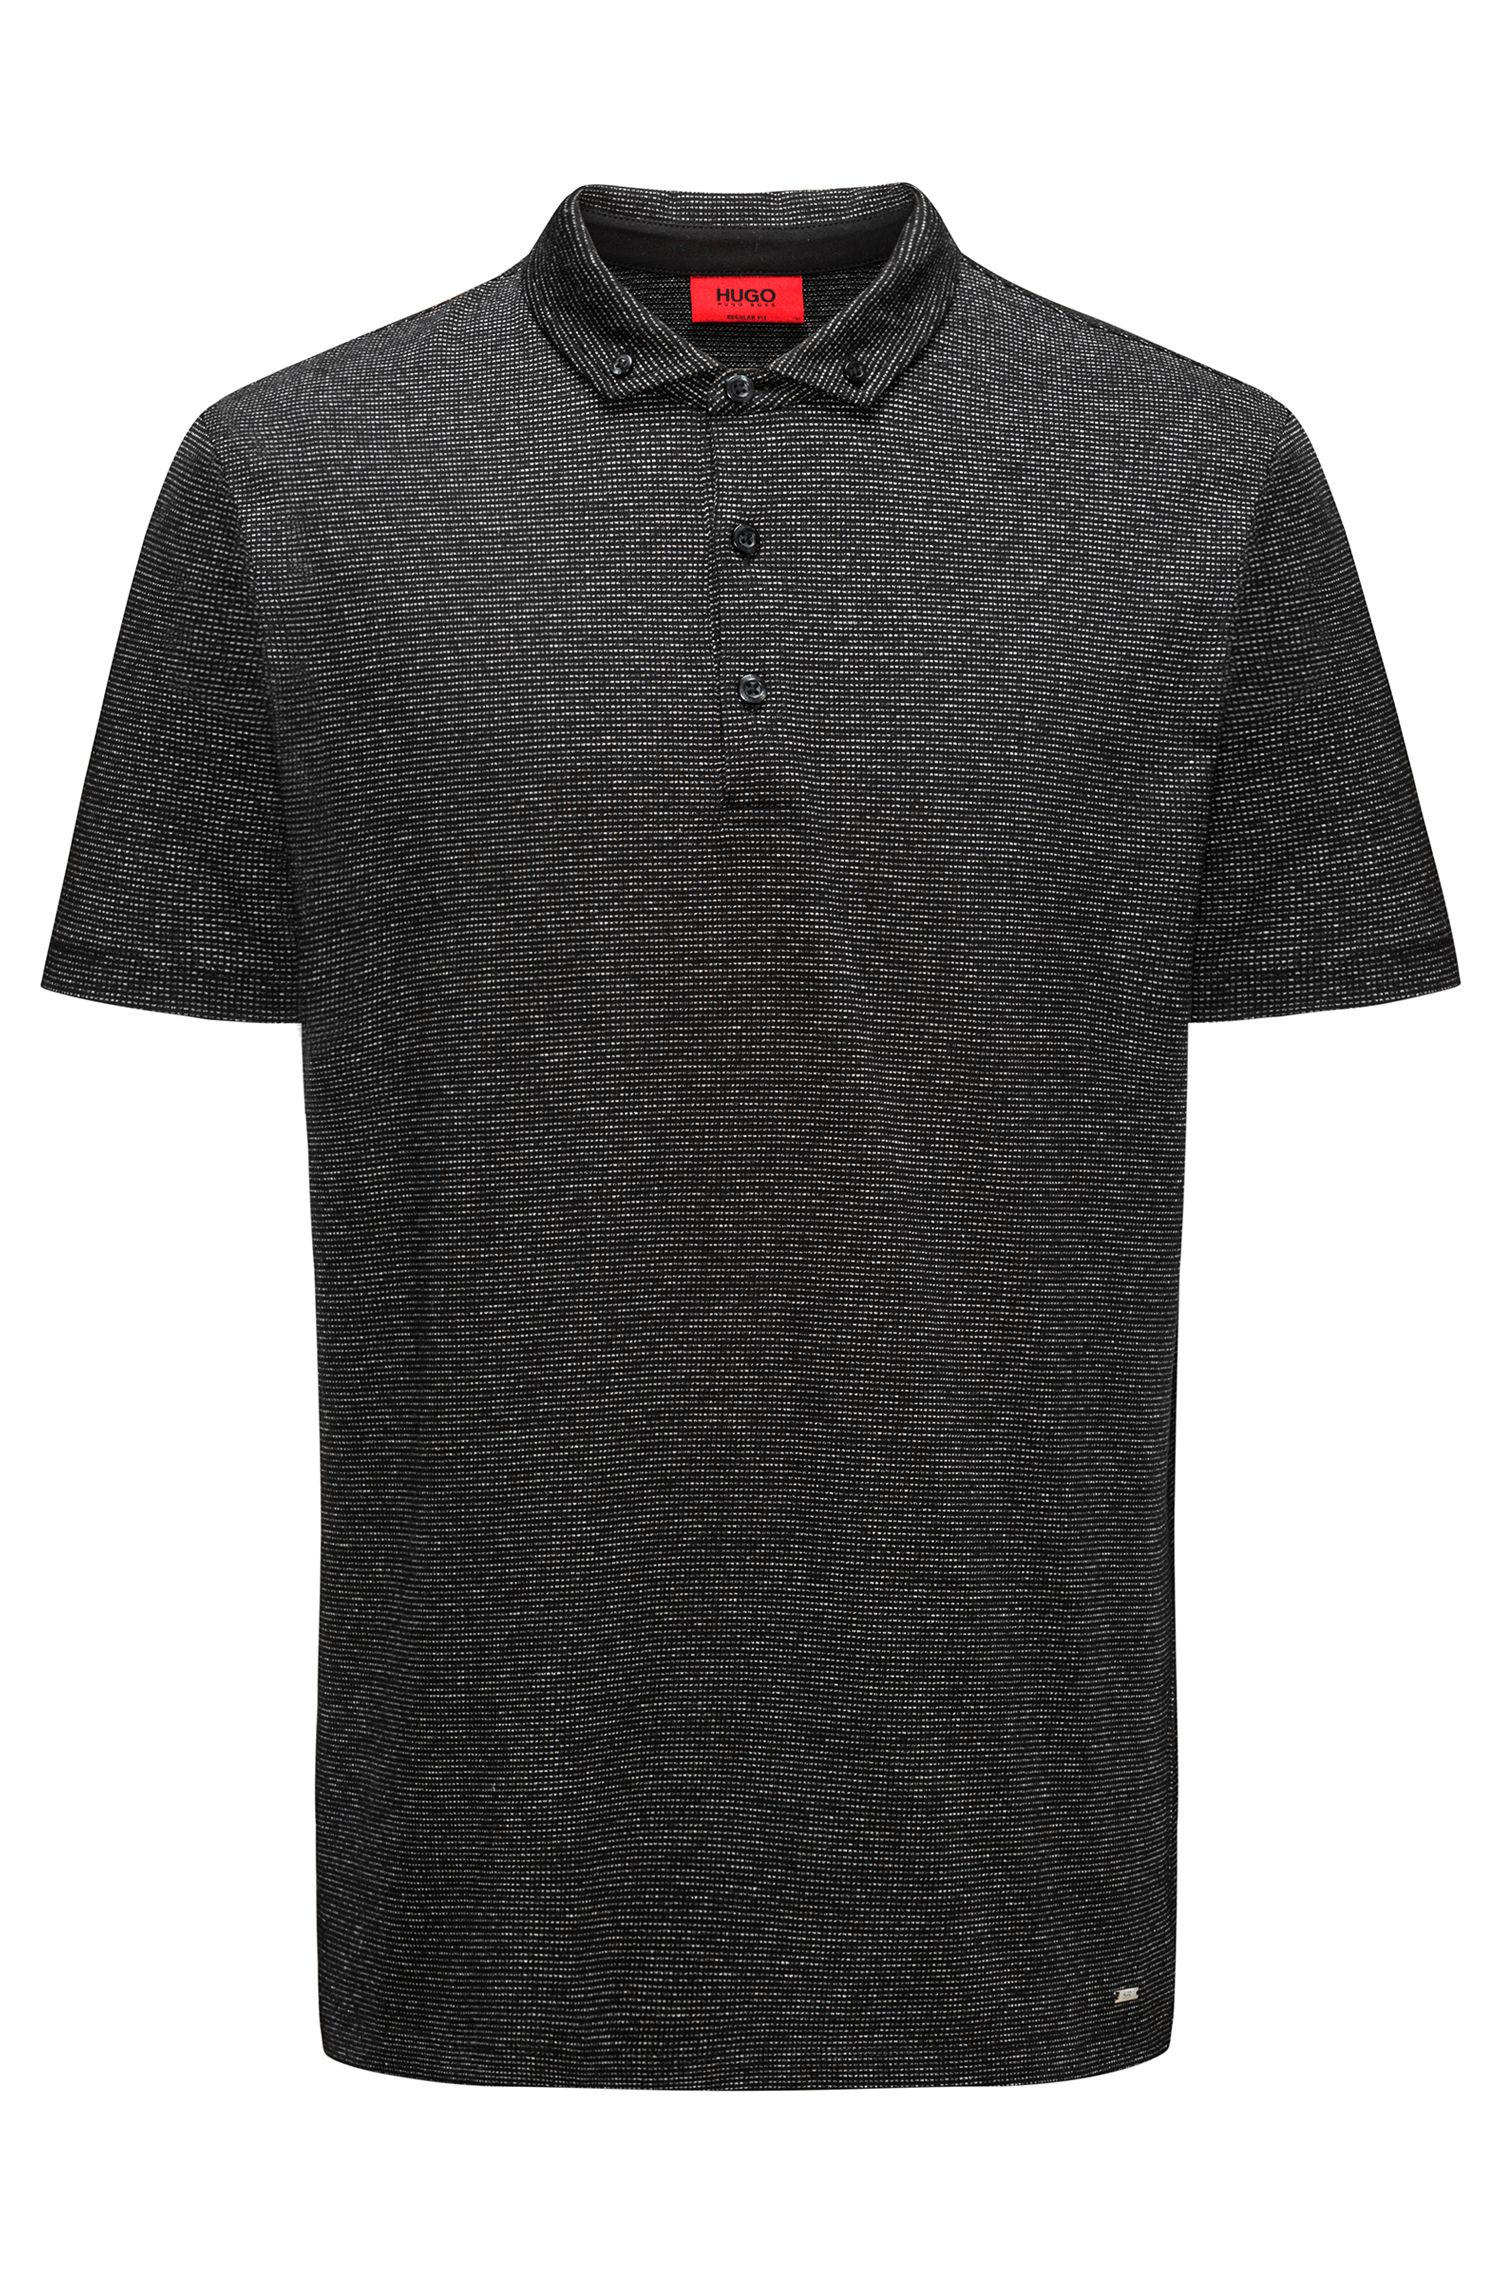 Polo shirt in mercerised cotton-blend jacquard